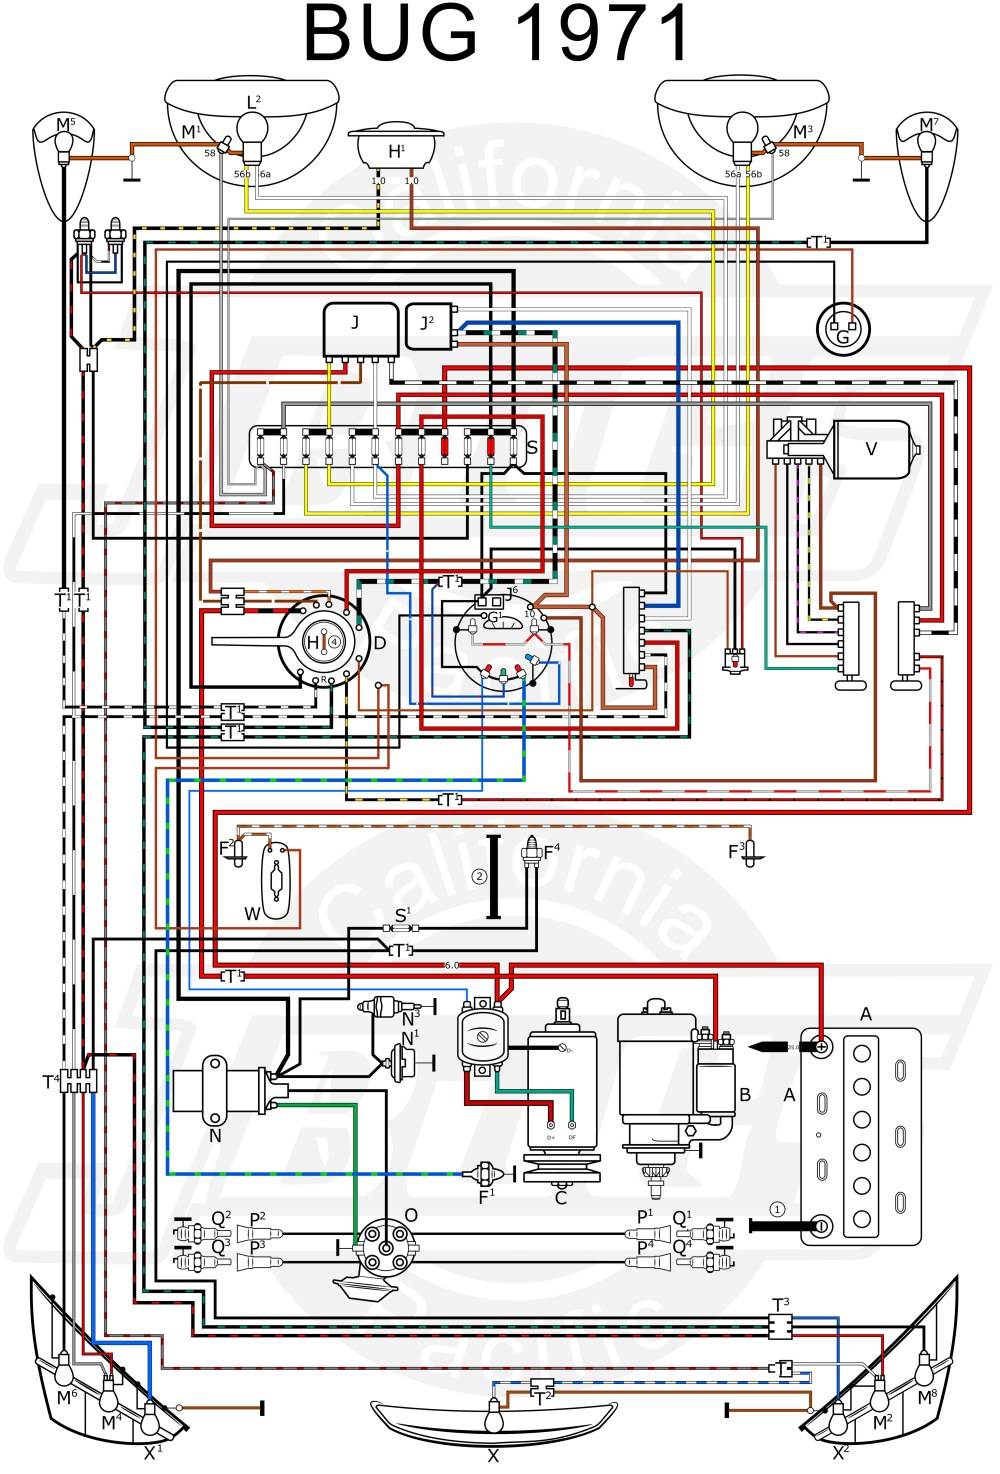 medium resolution of 72 type 1 wiring diagram wiring diagram wiring diagram types top bottom 72 type 1 wiring